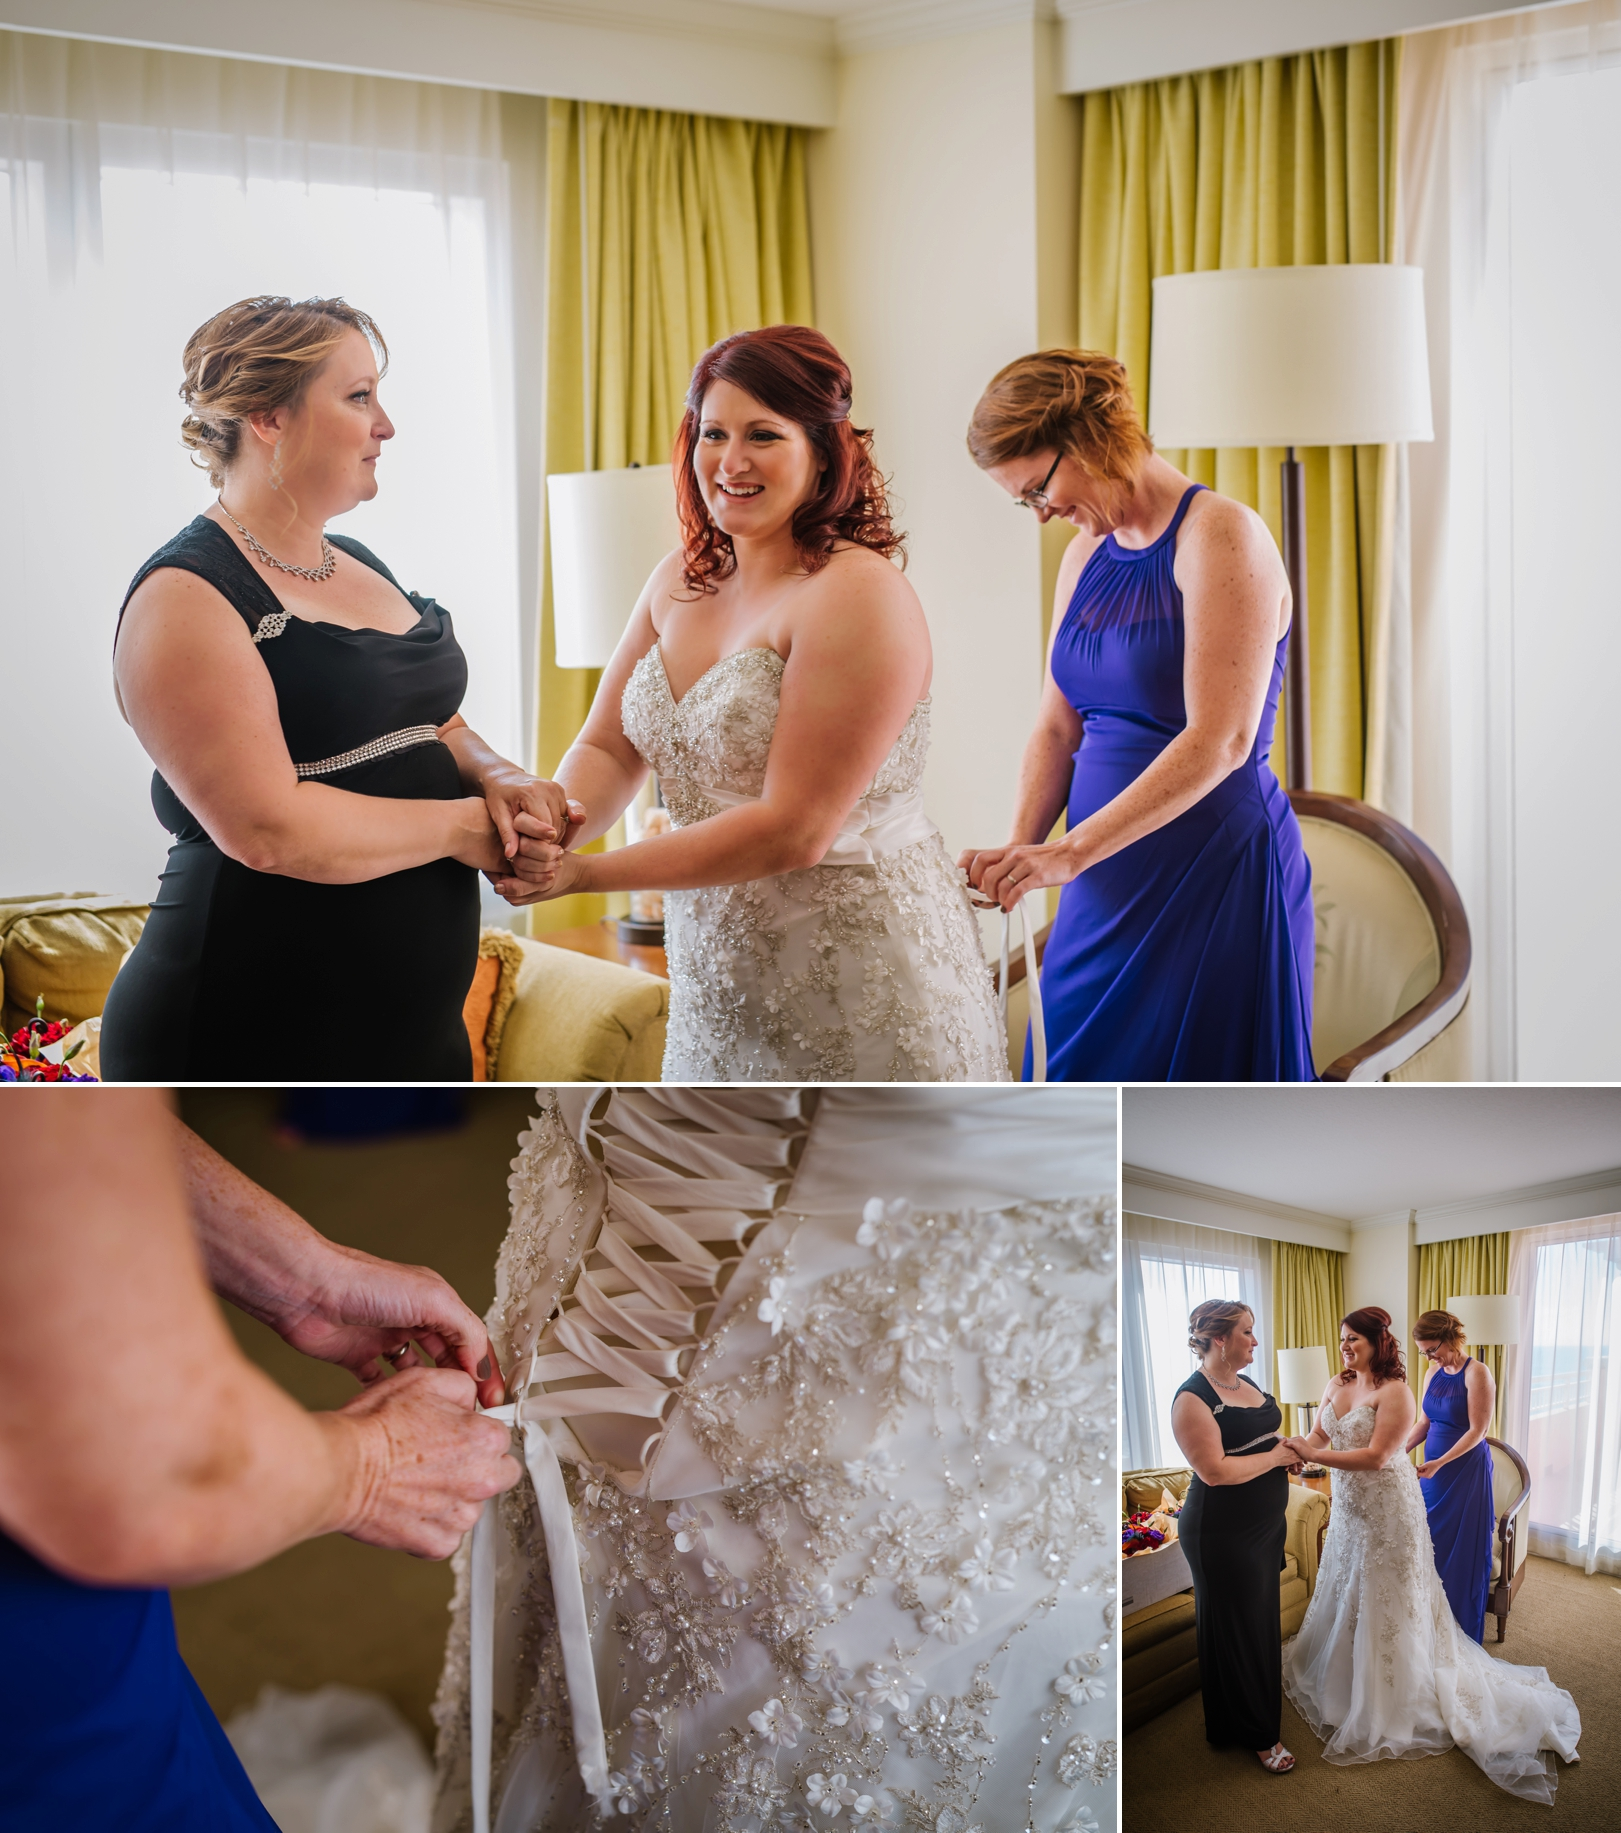 clearwater-beach-hyatt-masquerade-ballroom-themed-wedding-photograpy_0003.jpg